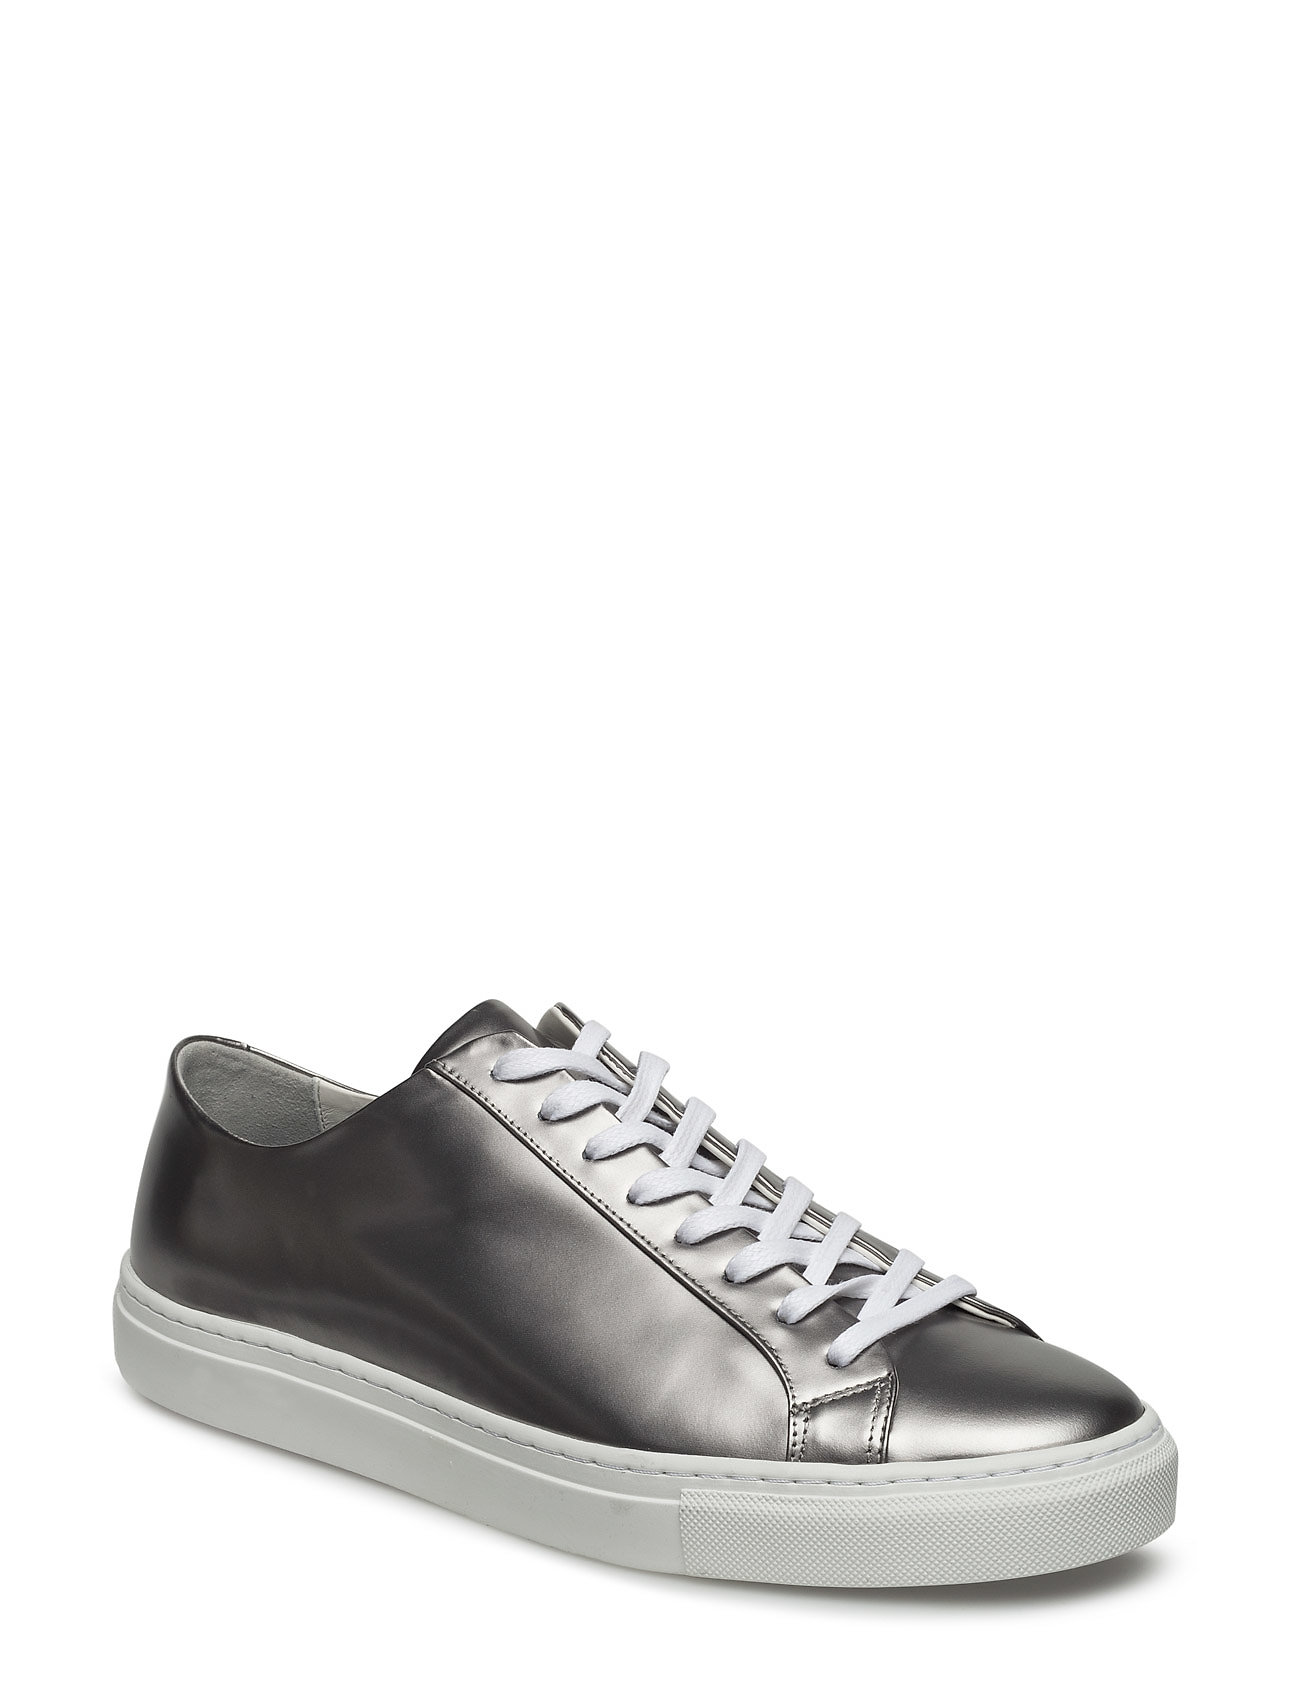 M. Morgan Low Metallic Filippa K Sneakers til Herrer i